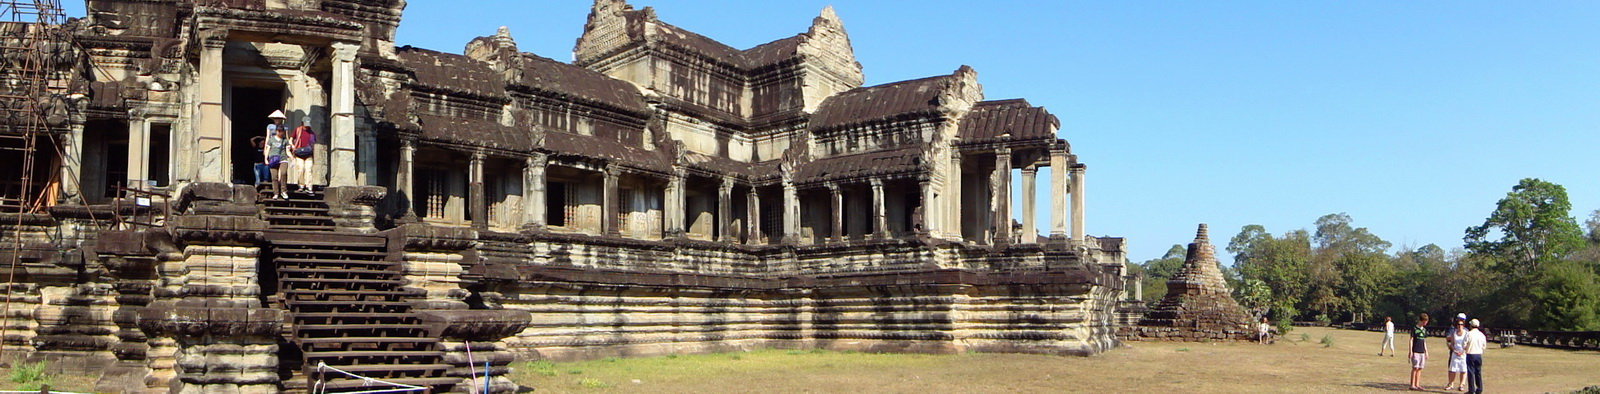 Angkor Wat Khmer architecture eastern gallery entrance 02